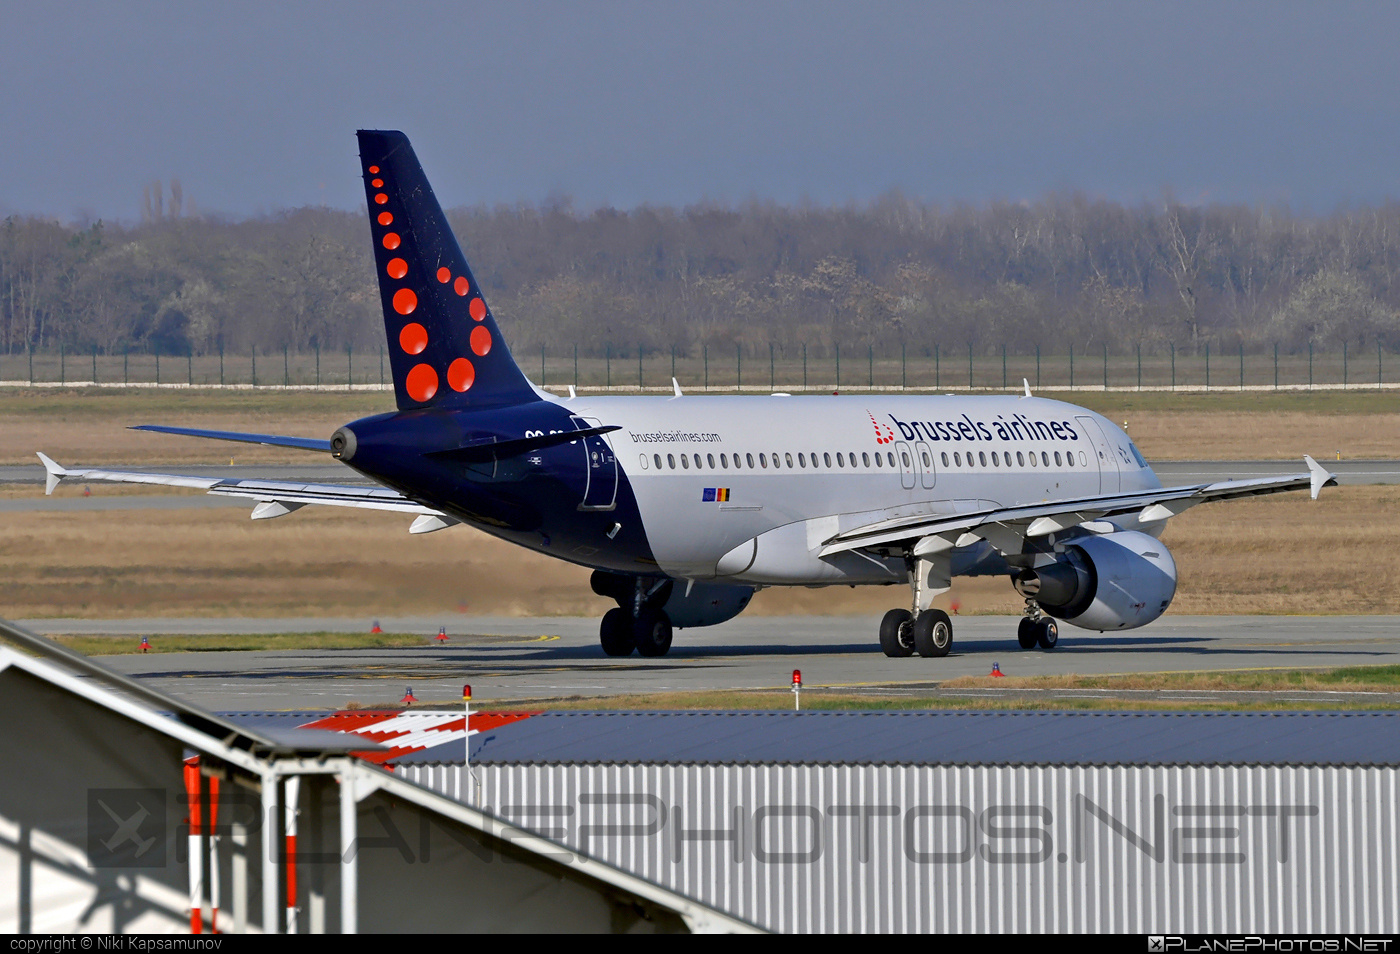 Airbus A319-111 - OO-SSU operated by Brussels Airlines #a319 #a320family #airbus #airbus319 #brusselsairlines